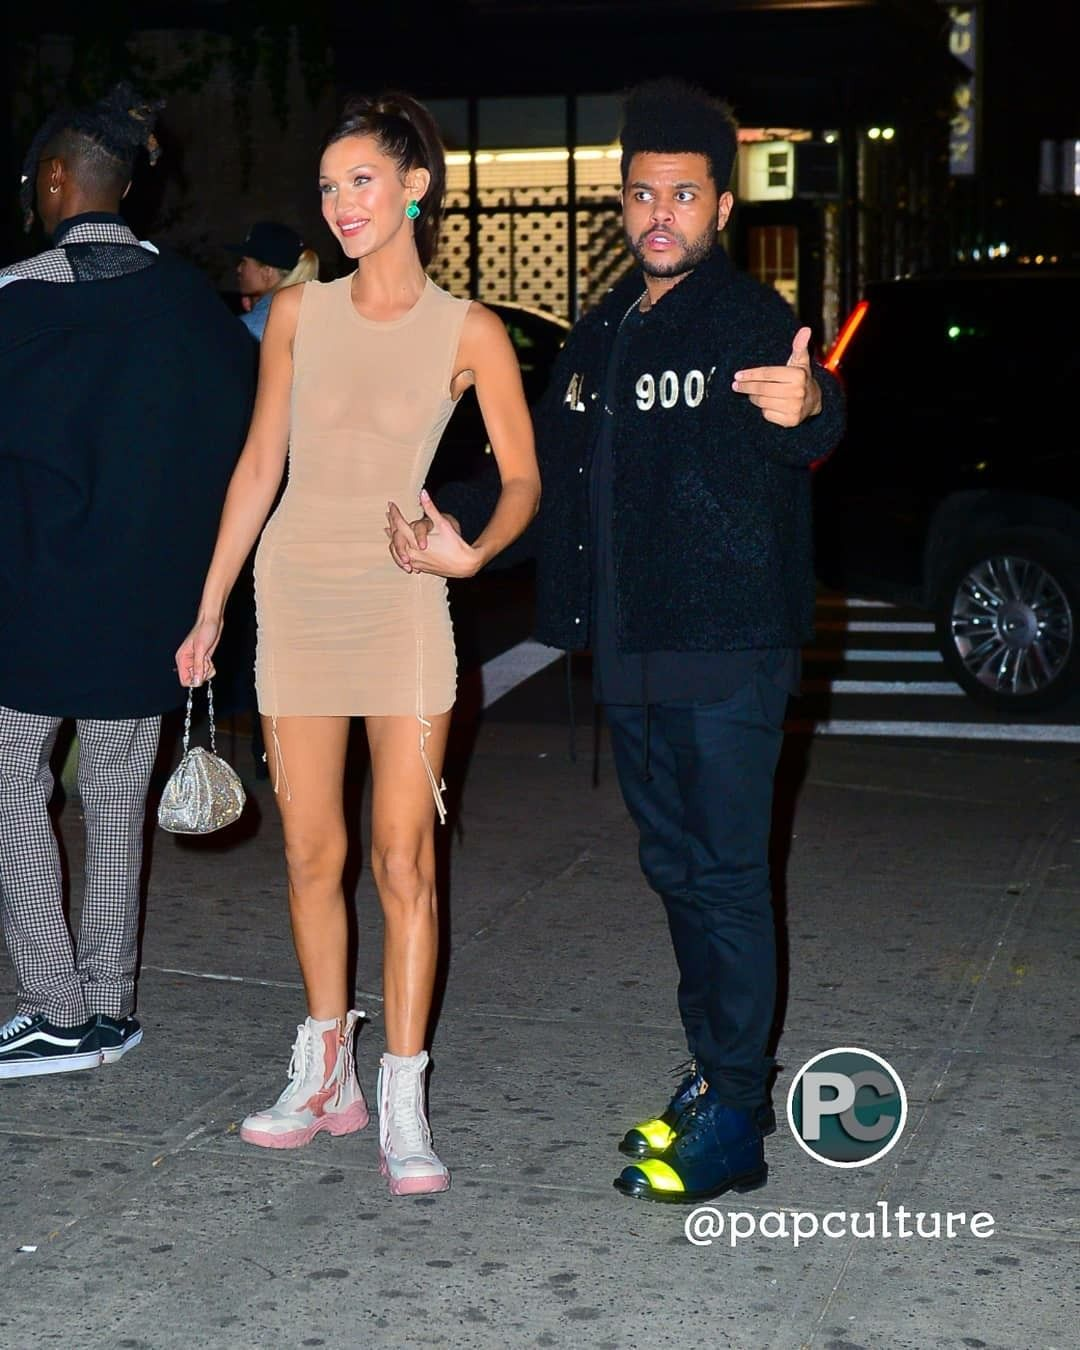 5dfd4f60411 11 8 18  Bella and The Weeknd leaving the Victoria s Secret afterparty in NY